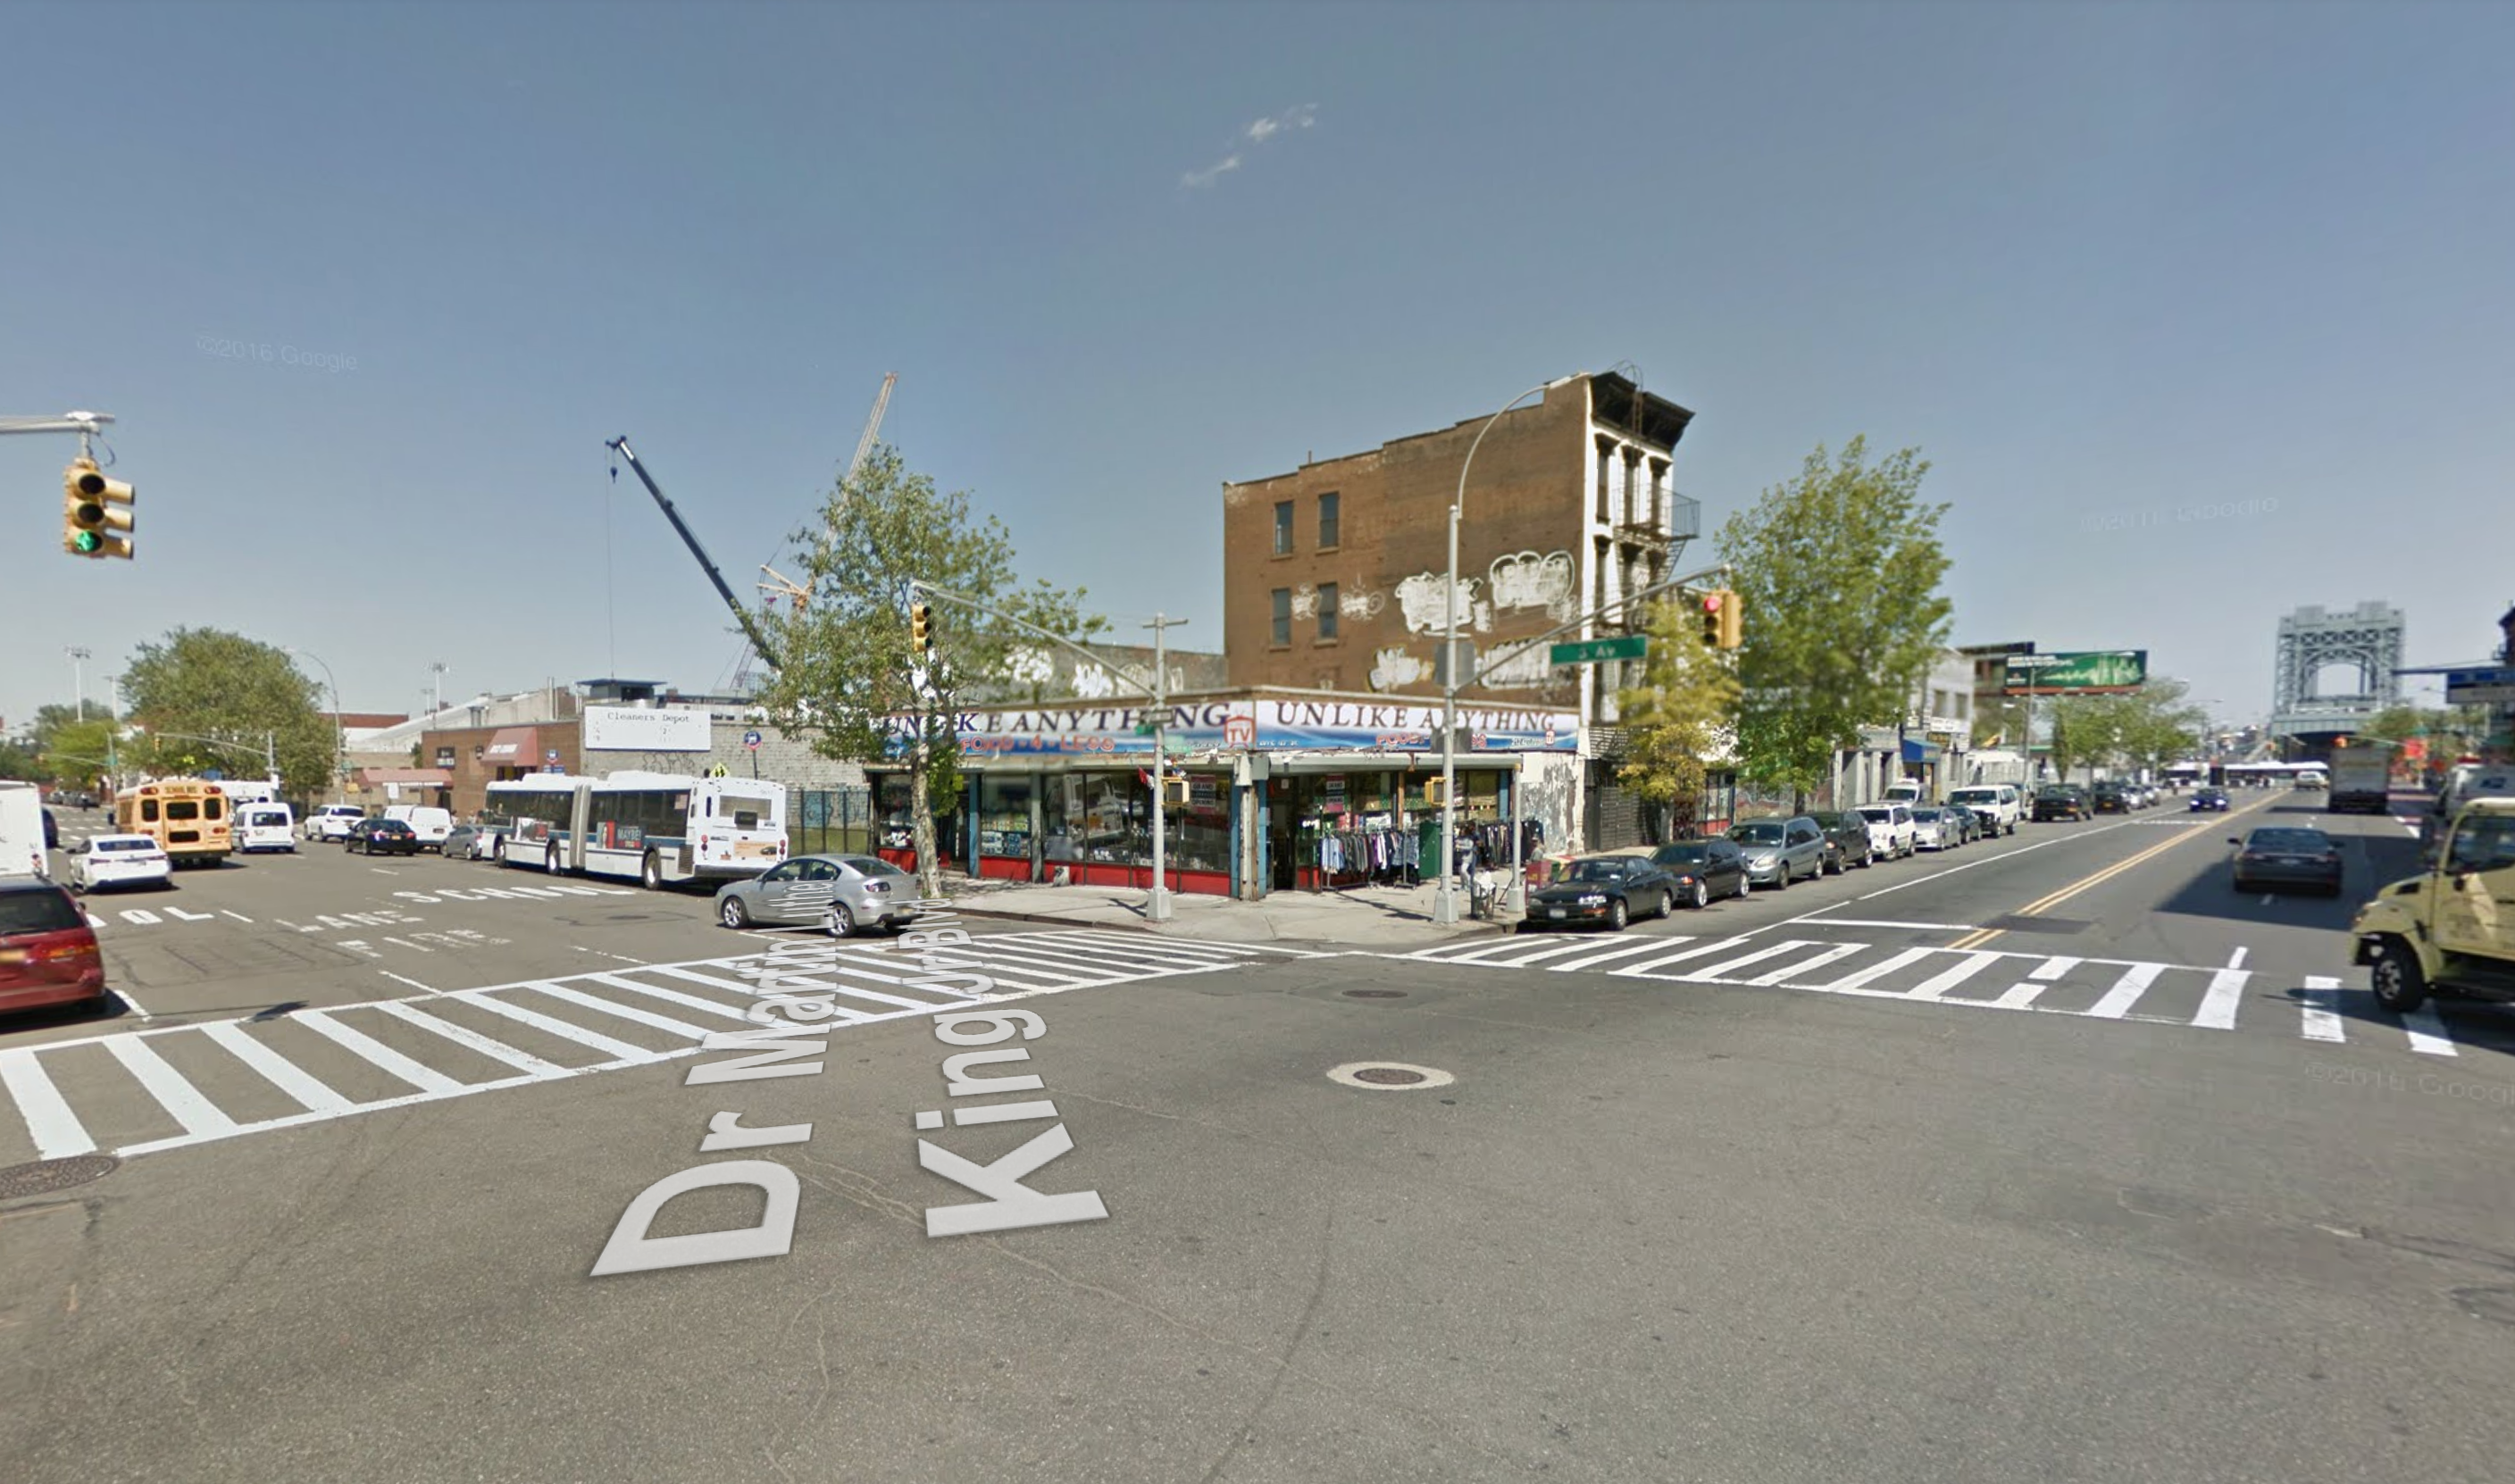 201 East 125th Street, via Google Maps